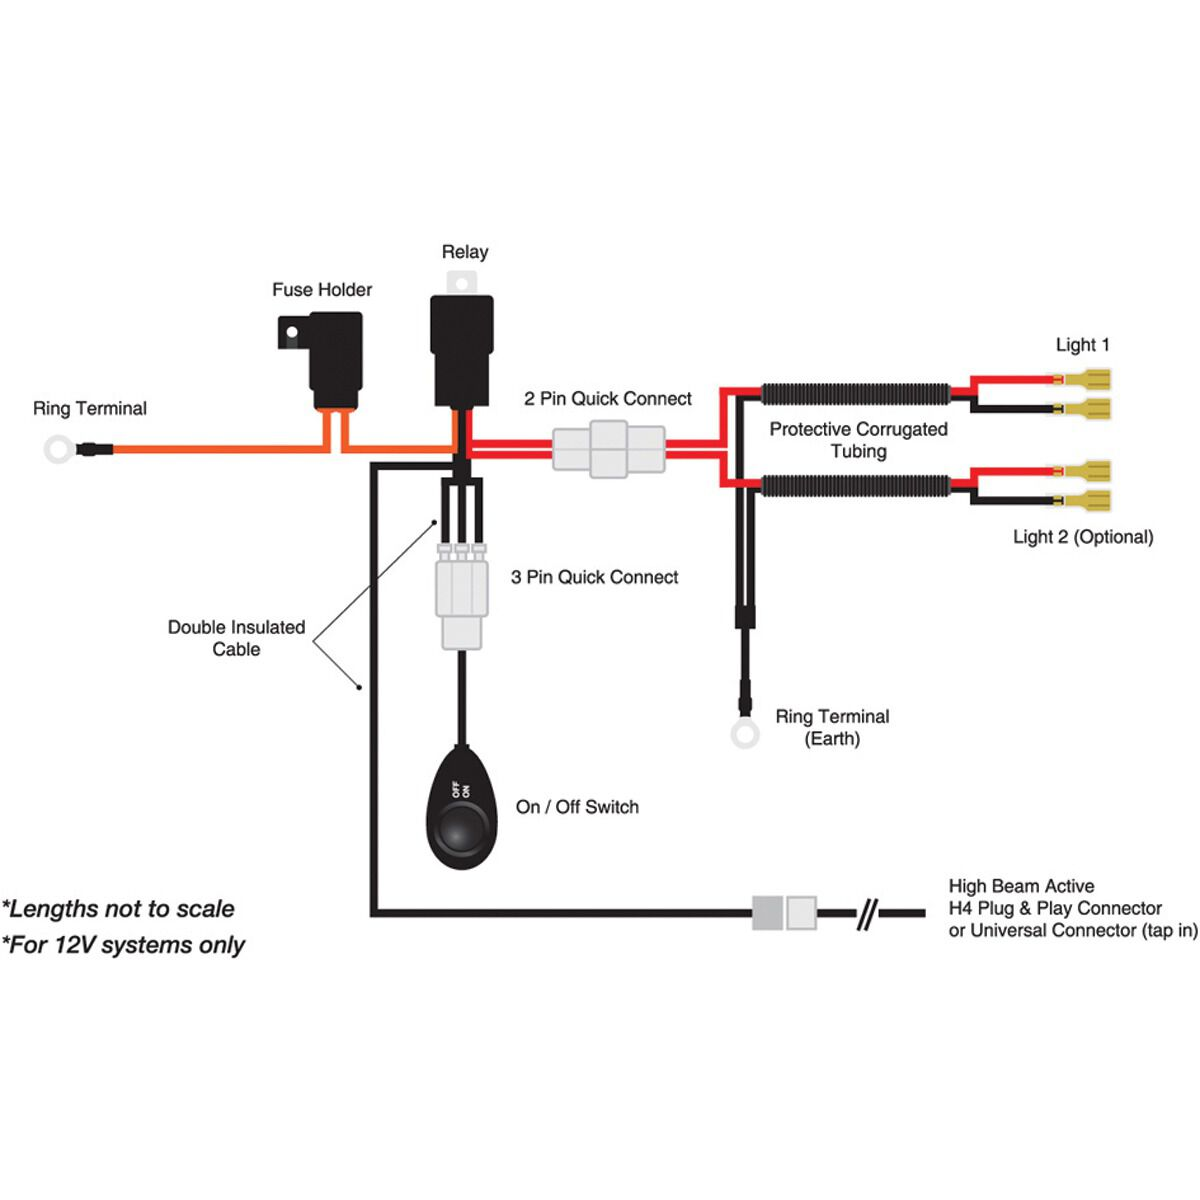 Kc Lights Wiring Harness Diagram. Kc Lights Wiring Diagram ... on